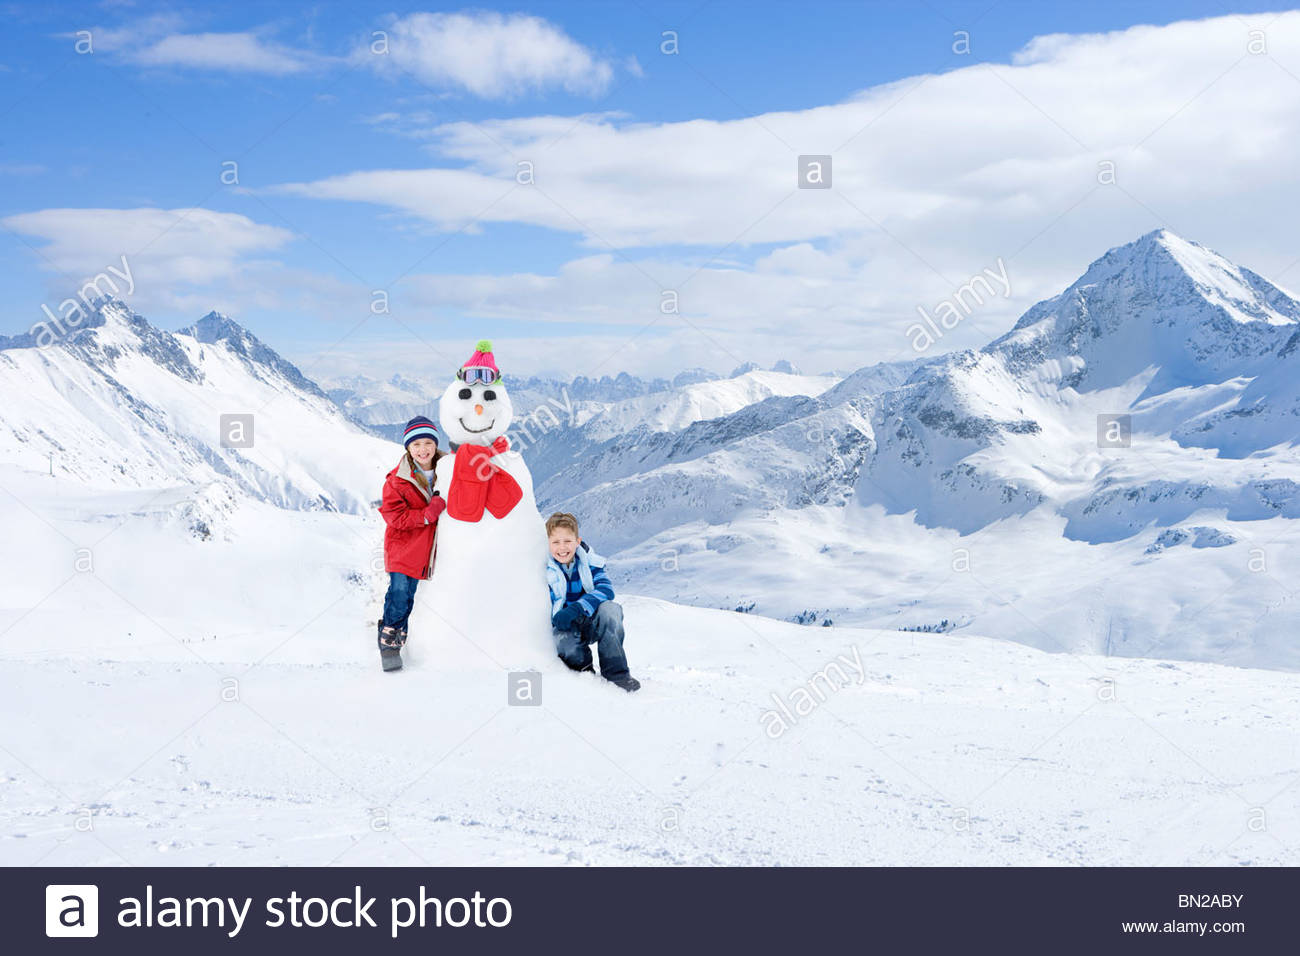 Portrait of boy and girl with snowman on snowy mountain - Stock Image